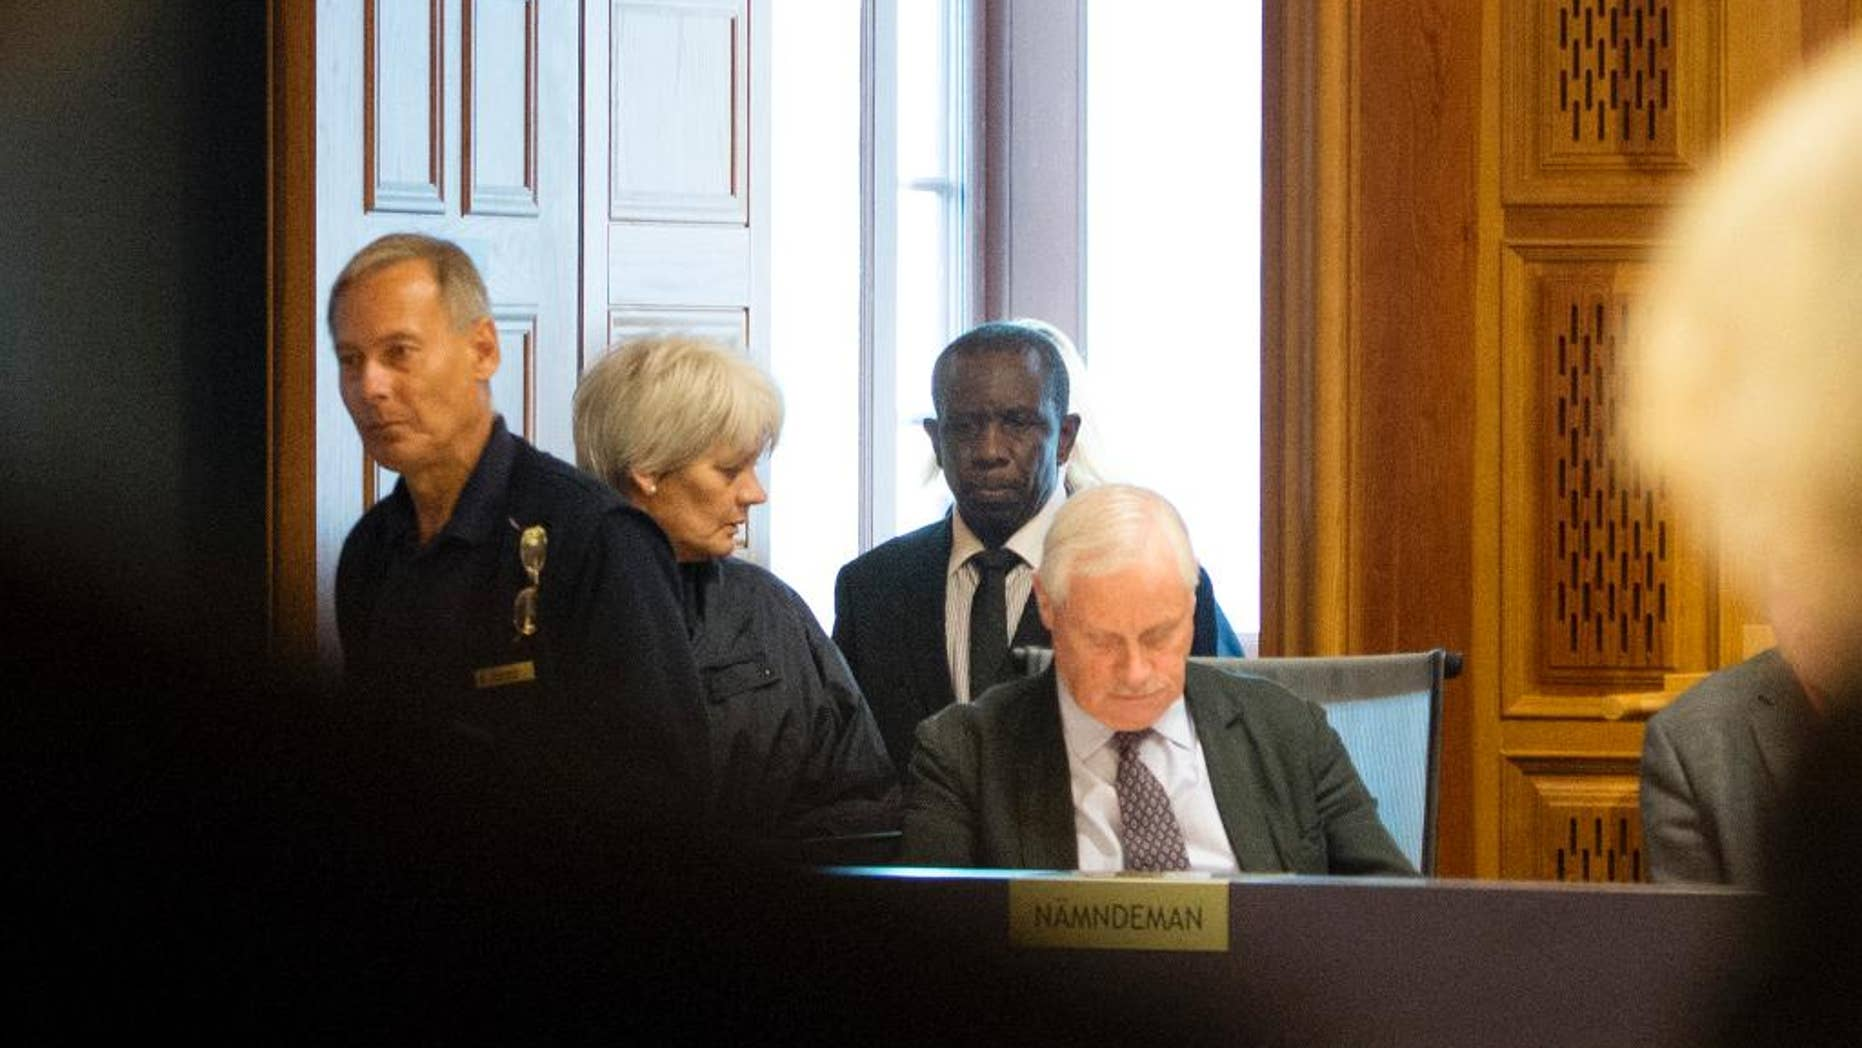 This is  Sept. 16, 2015  file picture shows Claver Berinkindi, second from right a Swedish citizen originally from Rwanda. Claver Berinkindi on Monday May 16, 2016  was found guilty of genocide and gross violation of international law. The Stockholm district court said the 61-year-old was an informal low-level Hutu leader who took part in massacres of civilians in Muyira and Butare in southern Rwanda.. (Jessica Gow/TT via AP) SWEDEN OUT